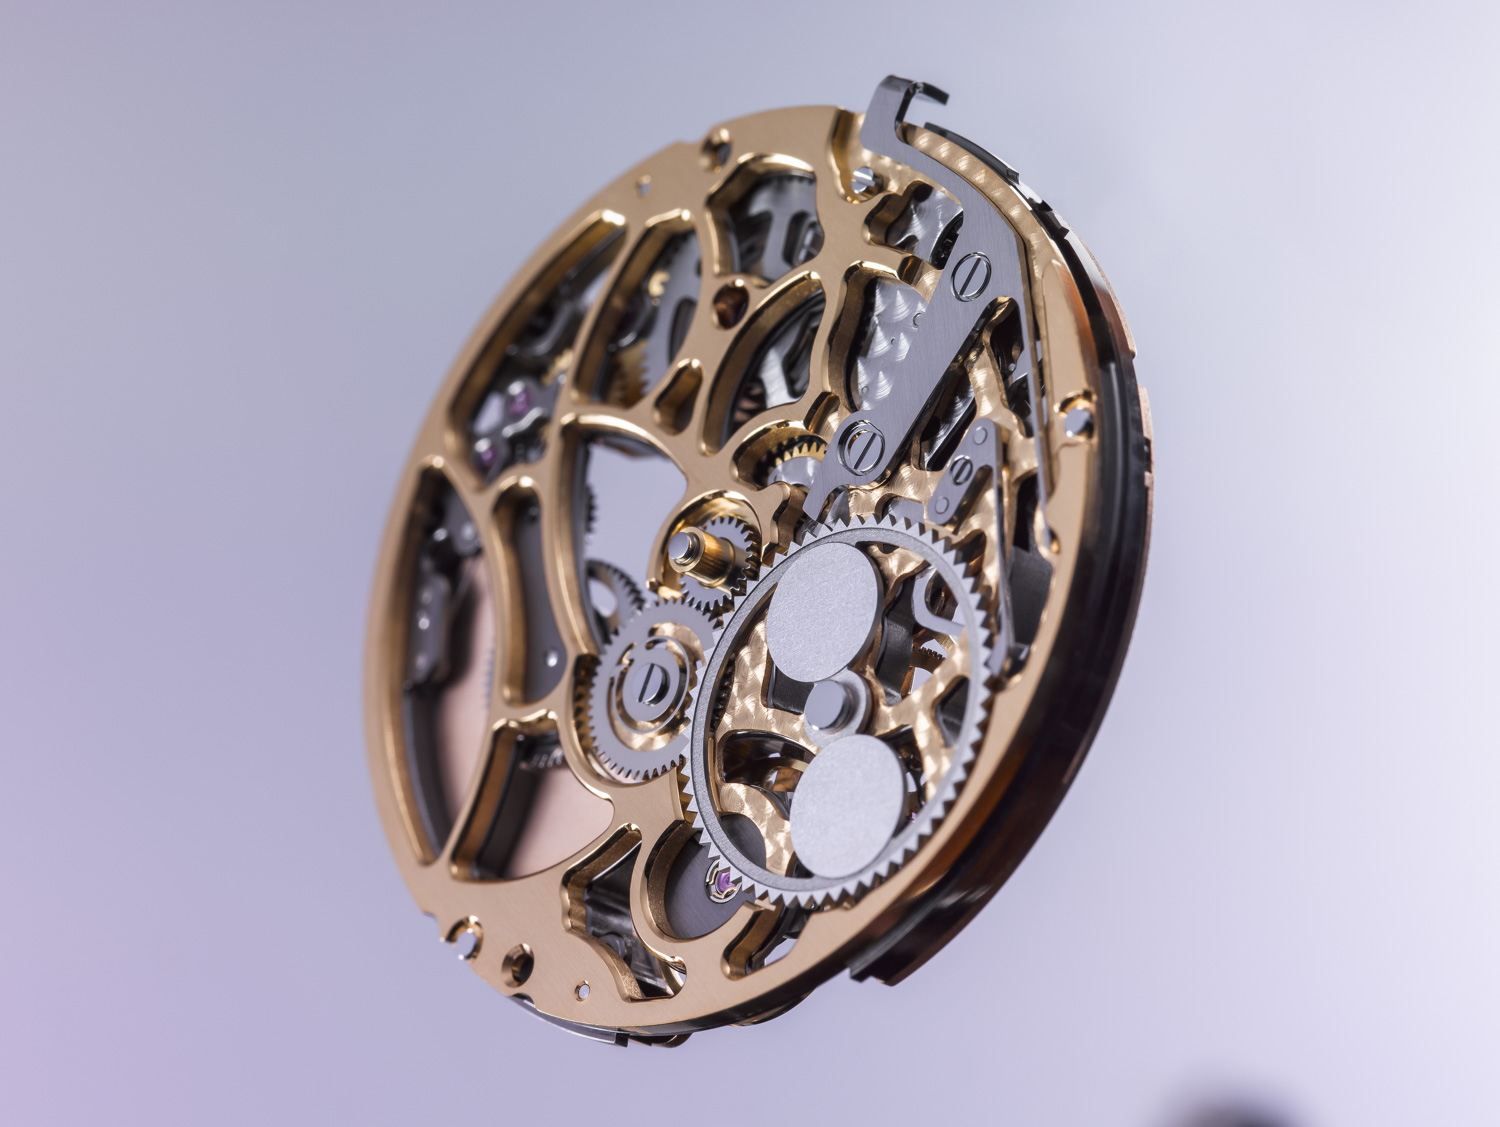 Vaucher Skeleton Openworked movement case study